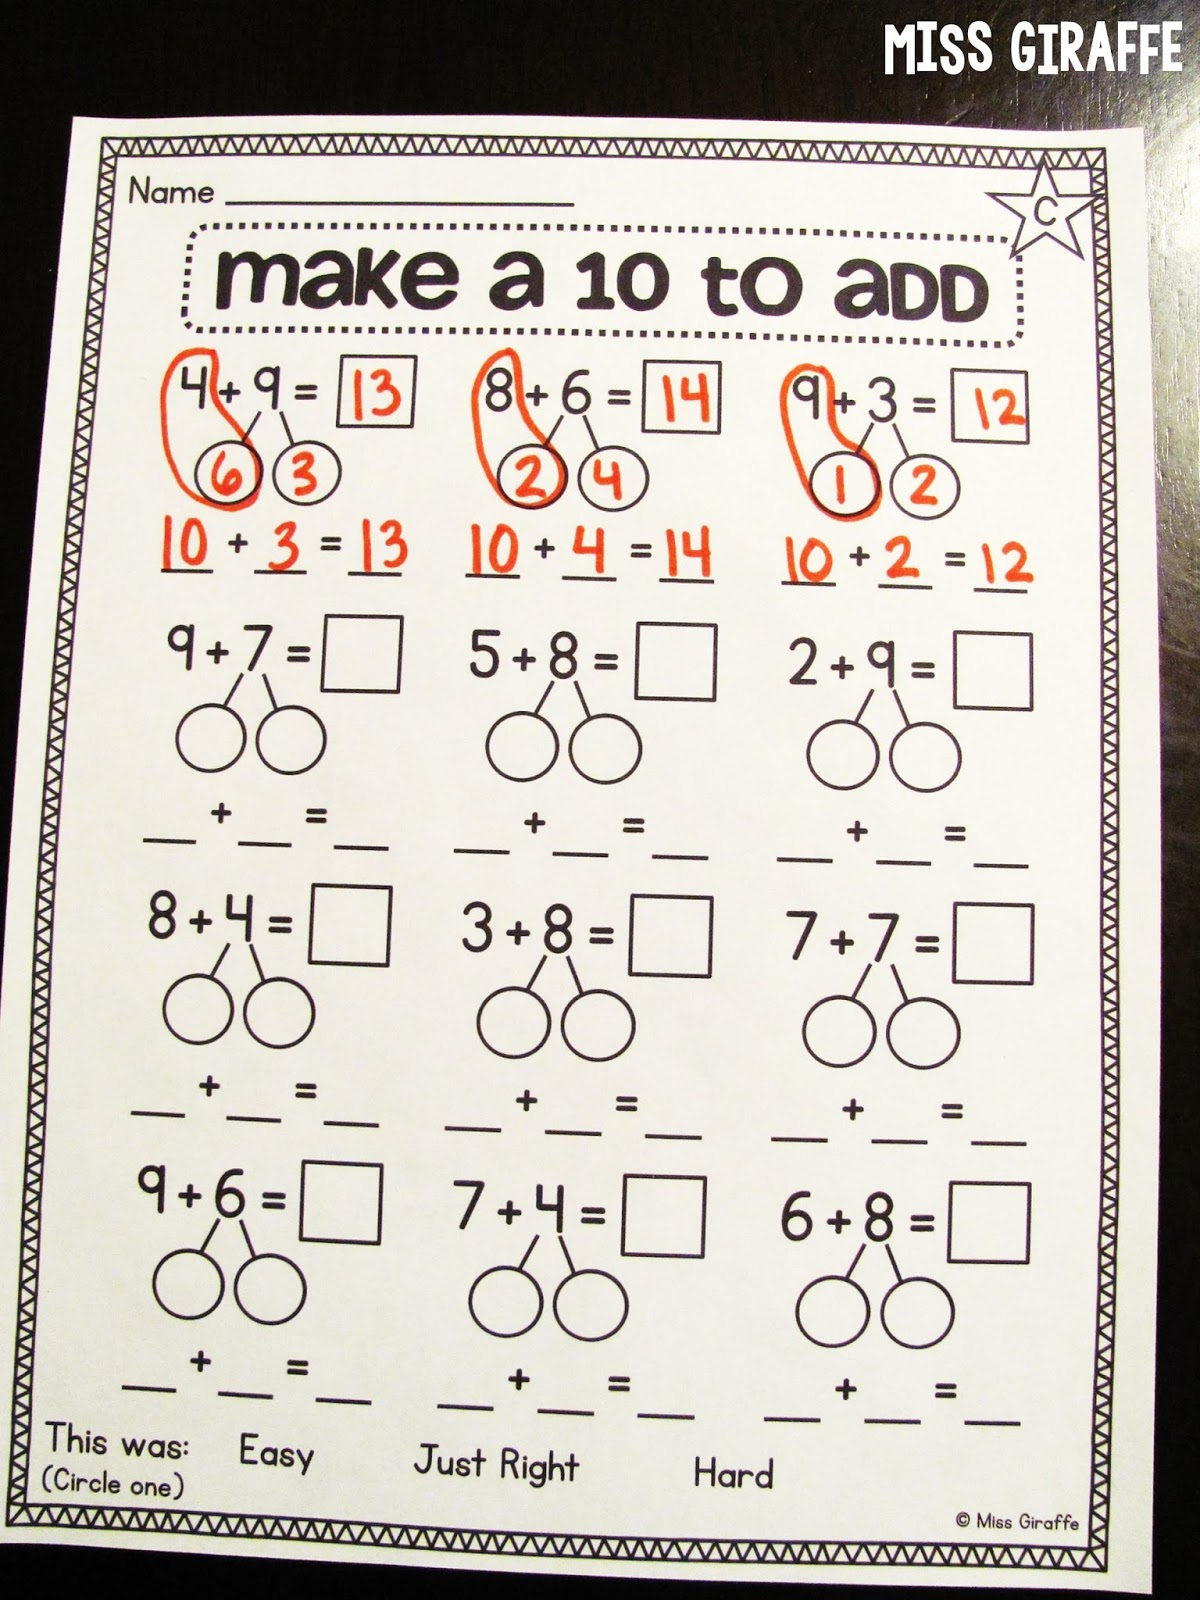 Miss Giraffe'S Class: Making A 10 To Add pertaining to Hebrew Calendar Worksheets And How To Make One